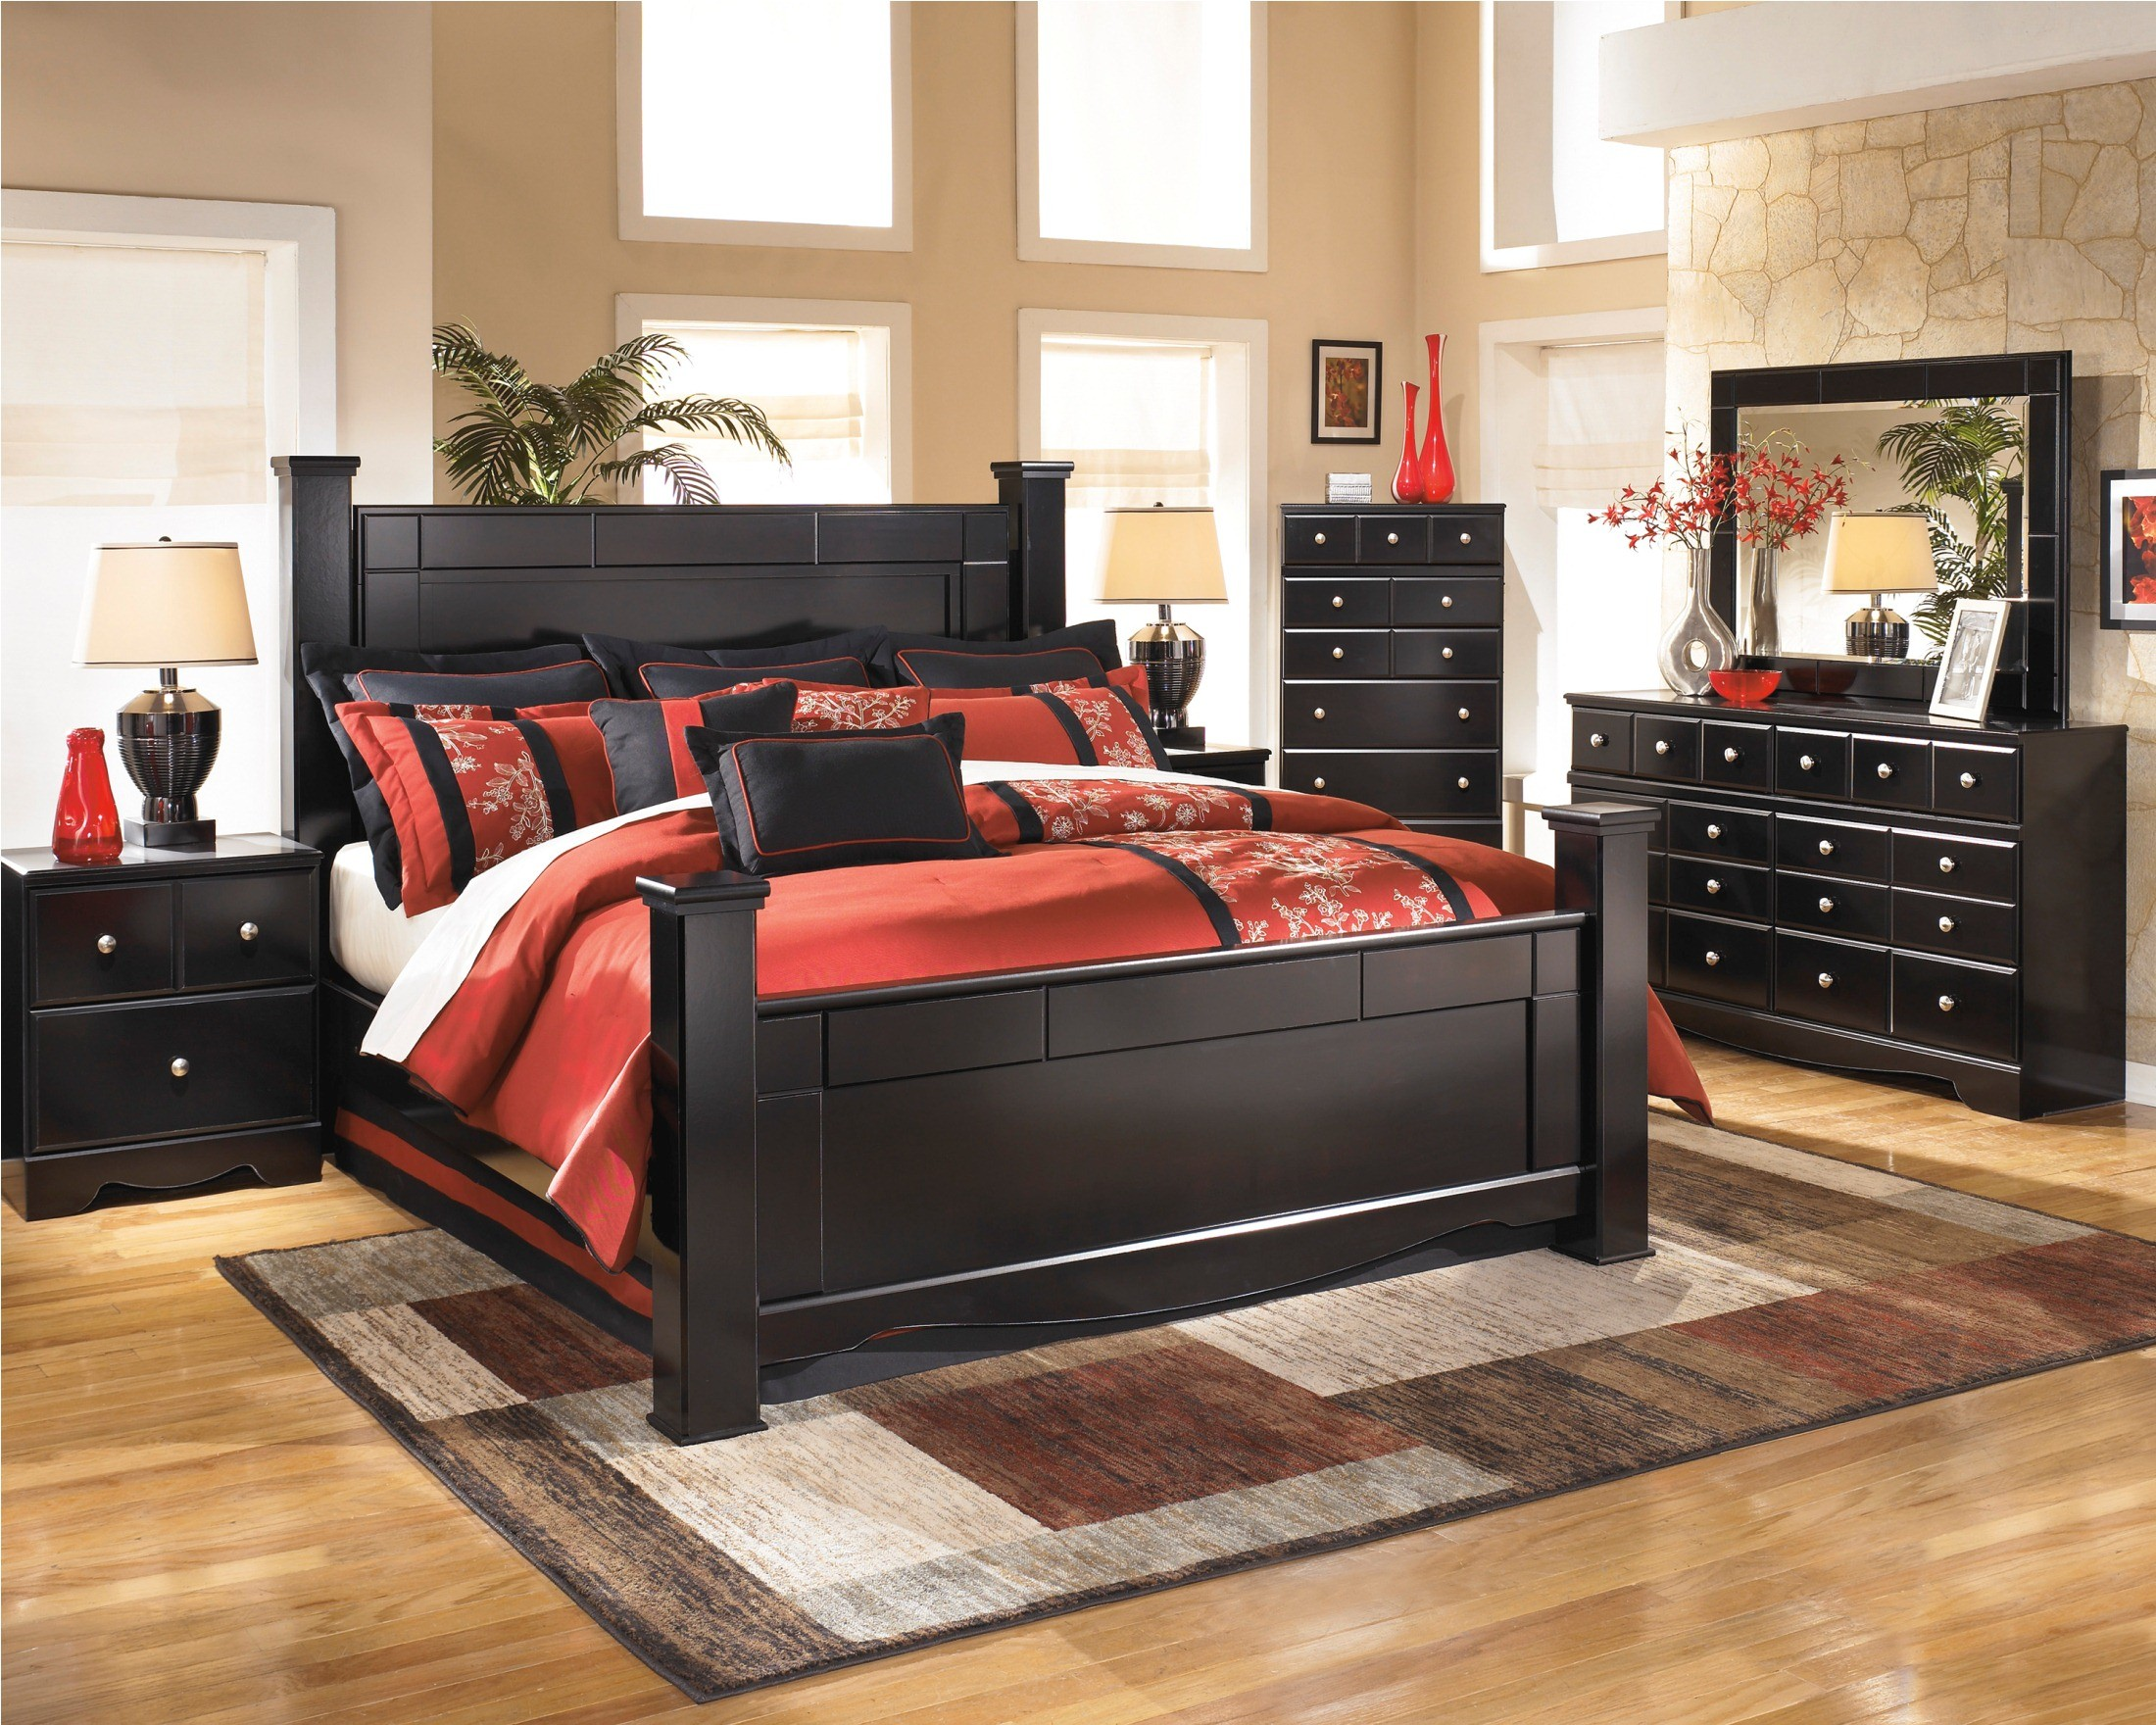 shay queen poster bed from ashley b271 61 64 67 98 coleman furniture